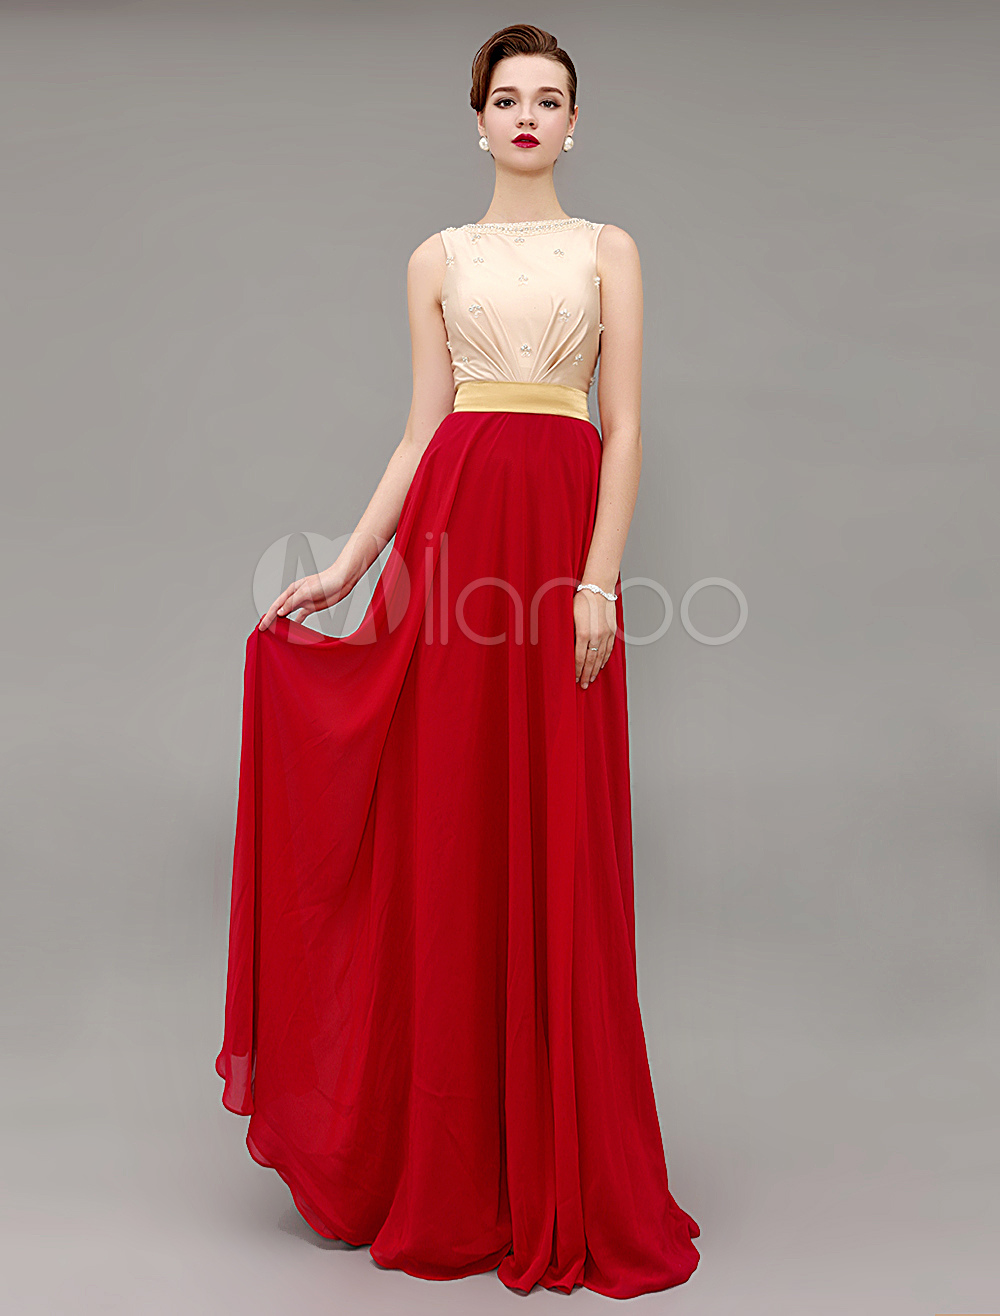 Red Prom Dresses 2018 Long Evening Dress Two Tone Bateau Beading Sash Party Dress